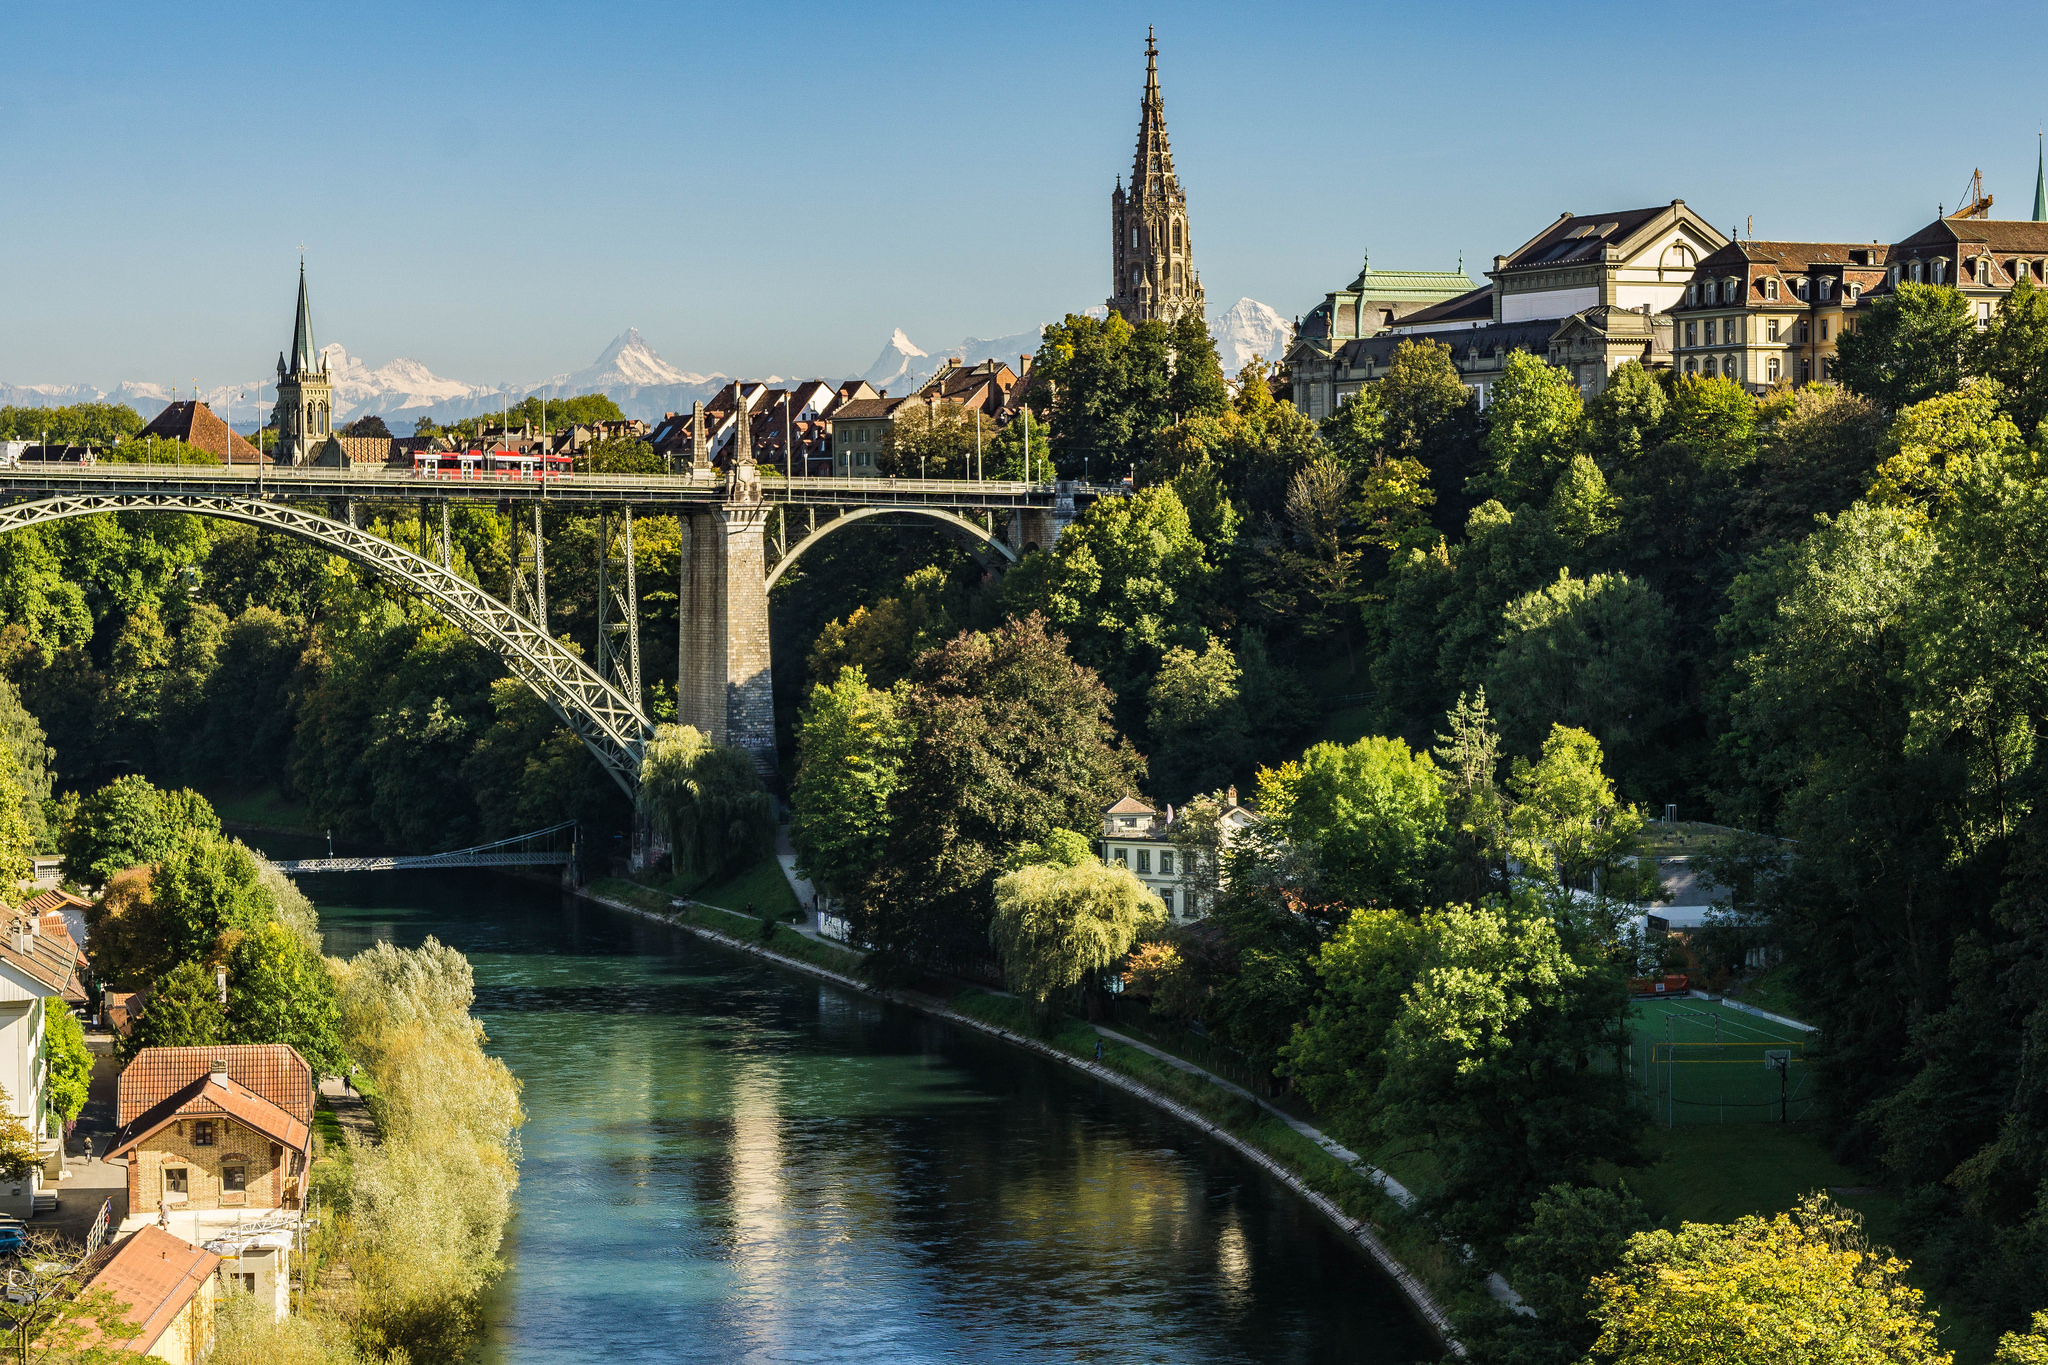 Bern. Photo credit: Christian Scheidegger